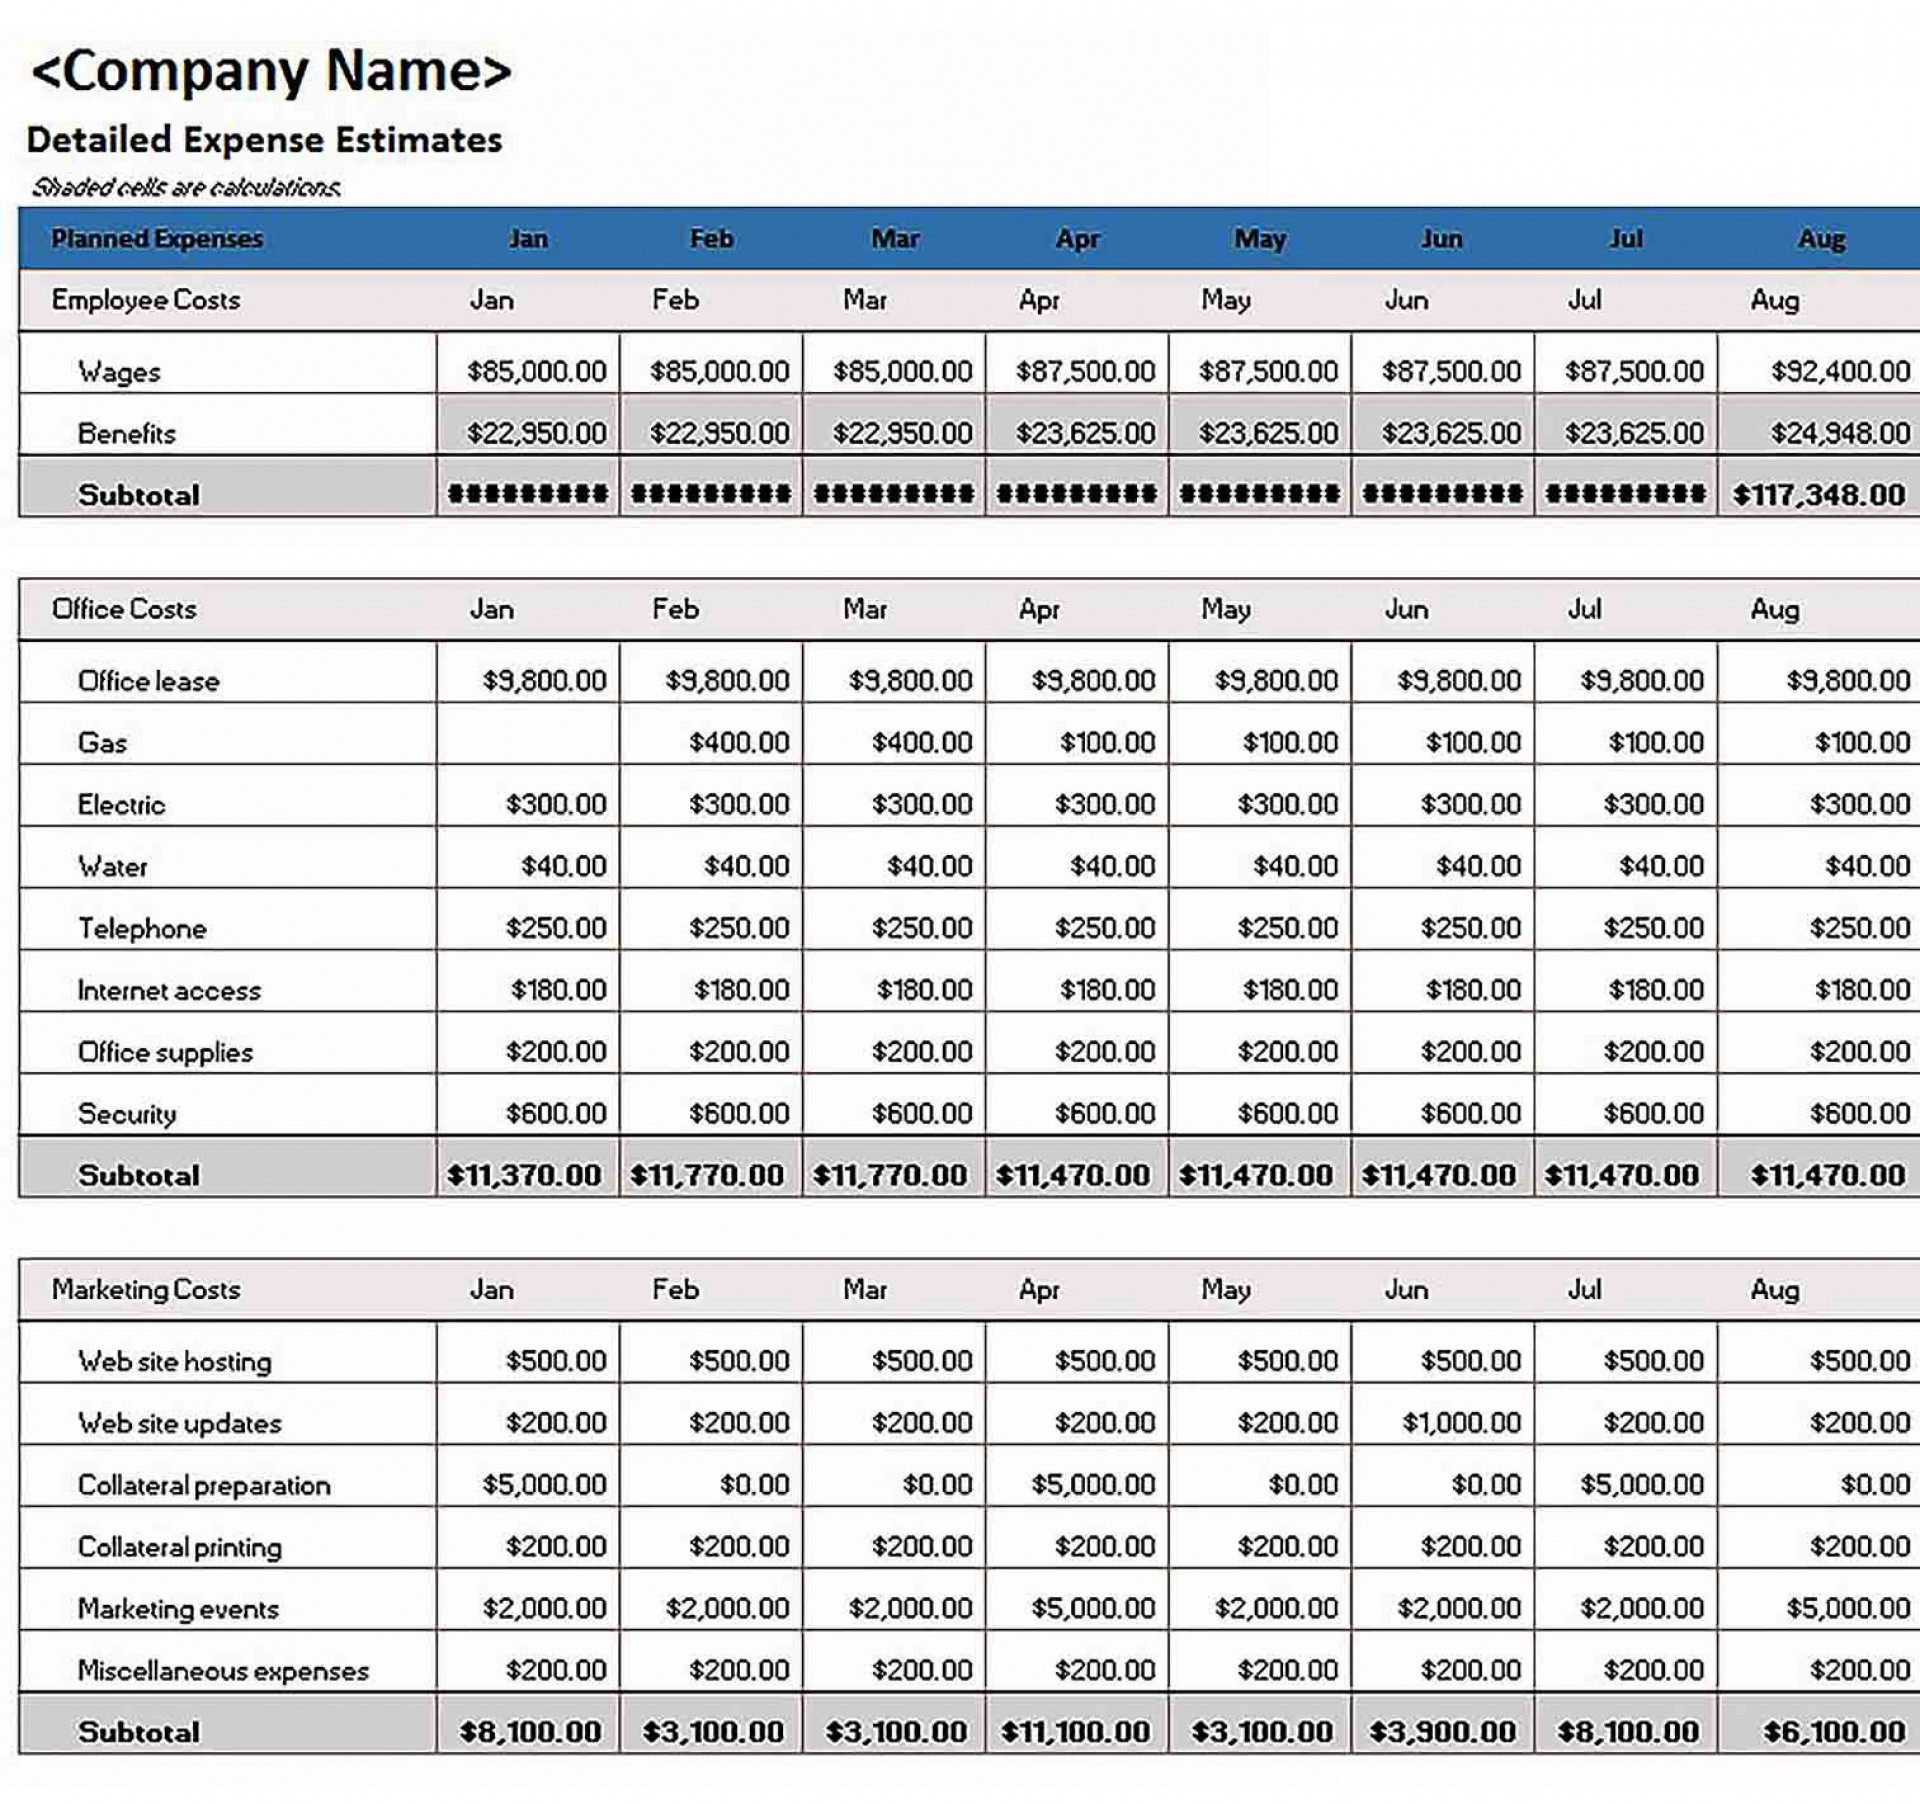 008 Awesome Budgeting Template In Excel Photo  Training Budget Free Download Project1920